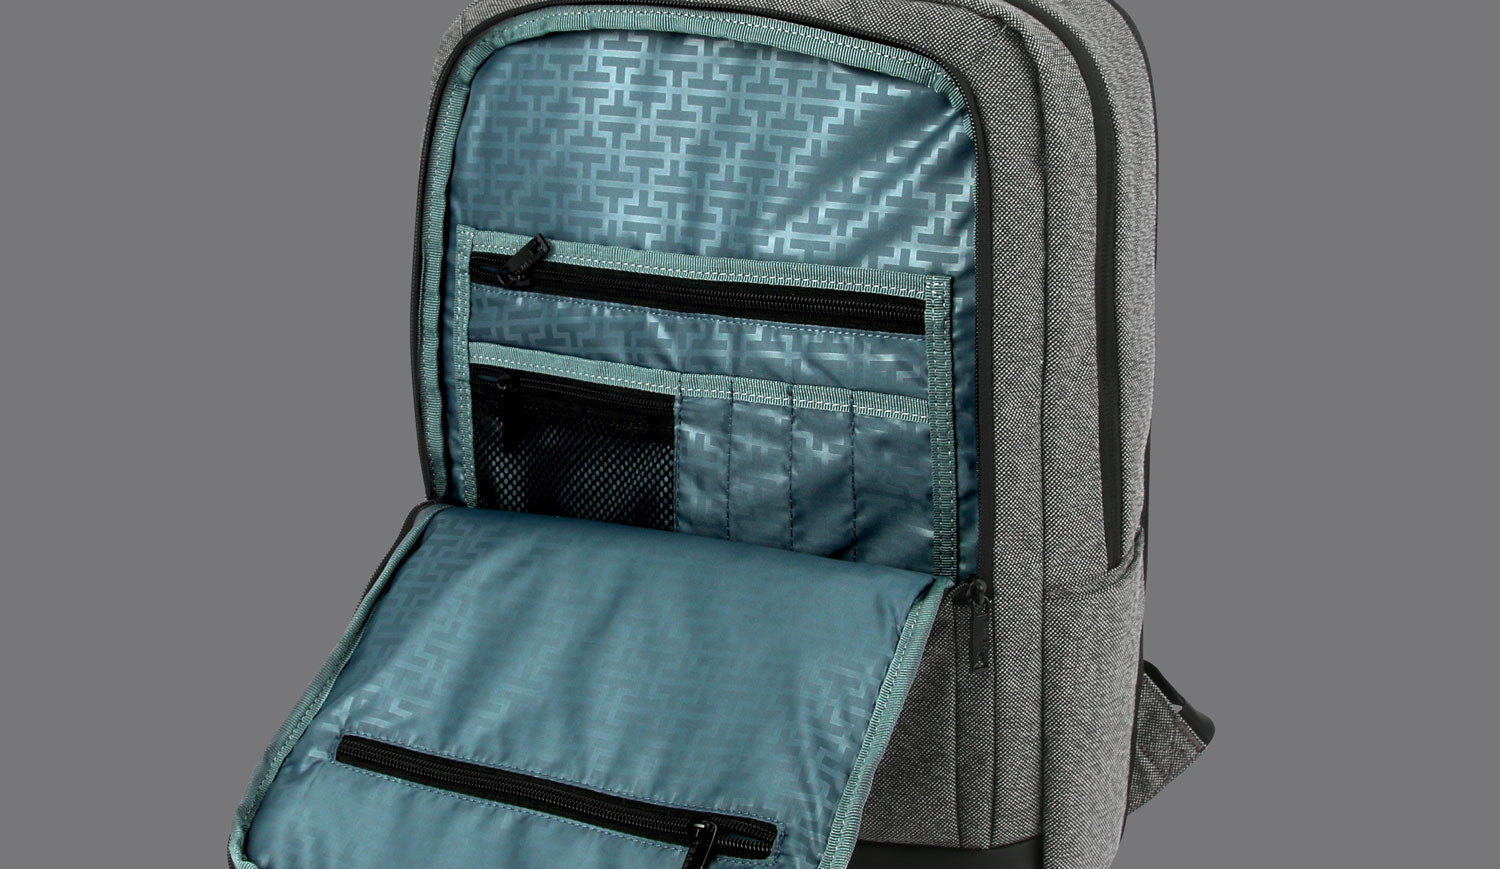 SLIM DESIGN WITH MULTIPLE UTILITY POCKETS AND ORGANIZERS